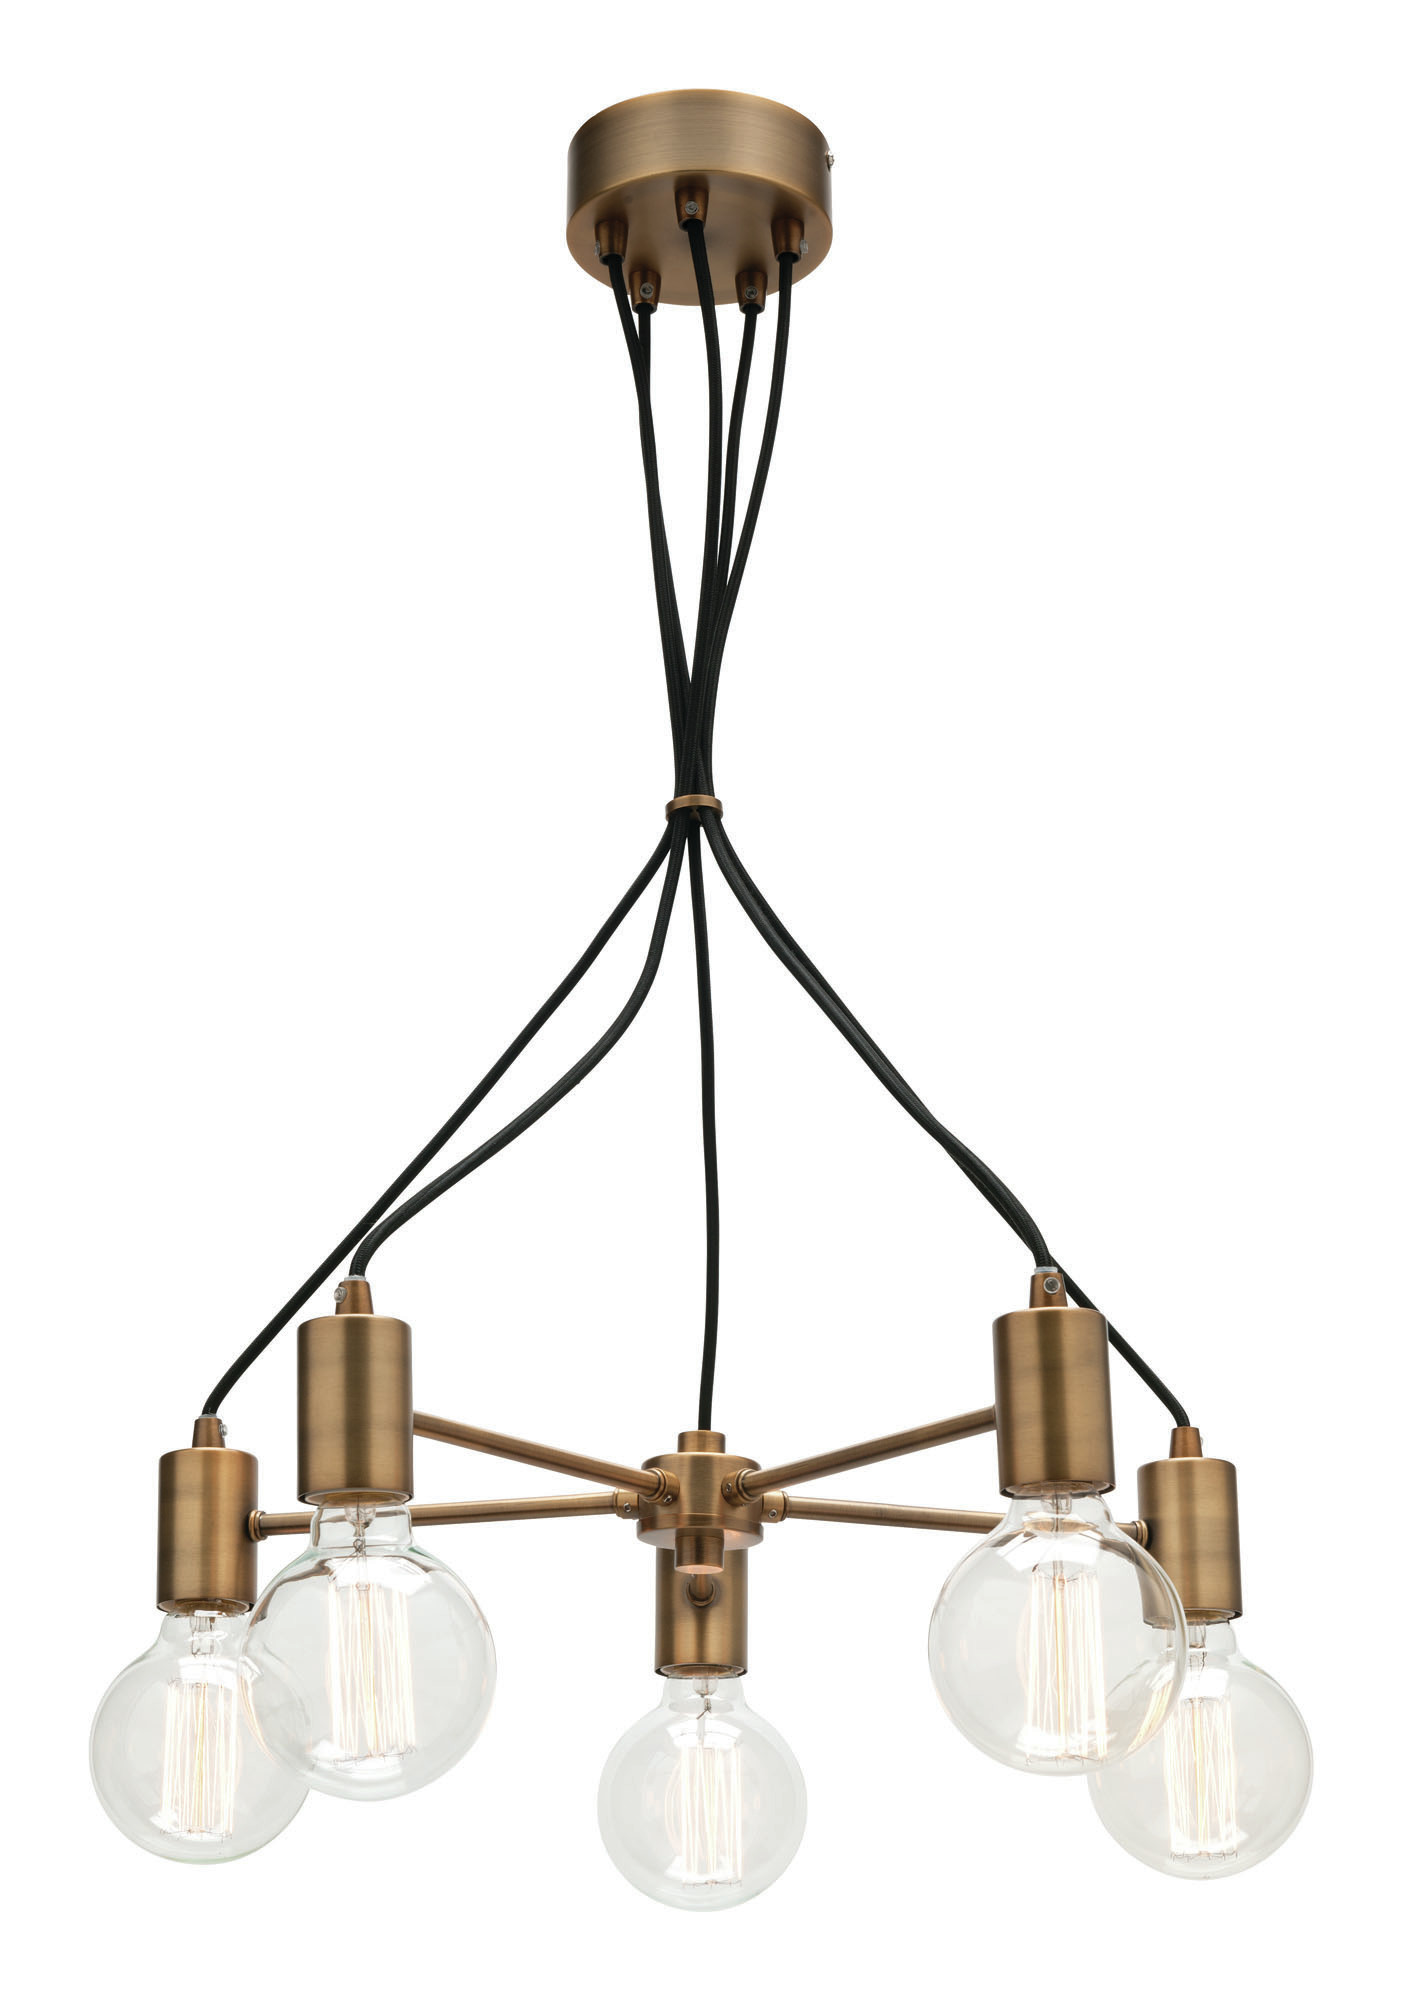 for furniture at brass chandeliers white yki pendant orno plexiglass id z lights and f finland lighting nummi sale